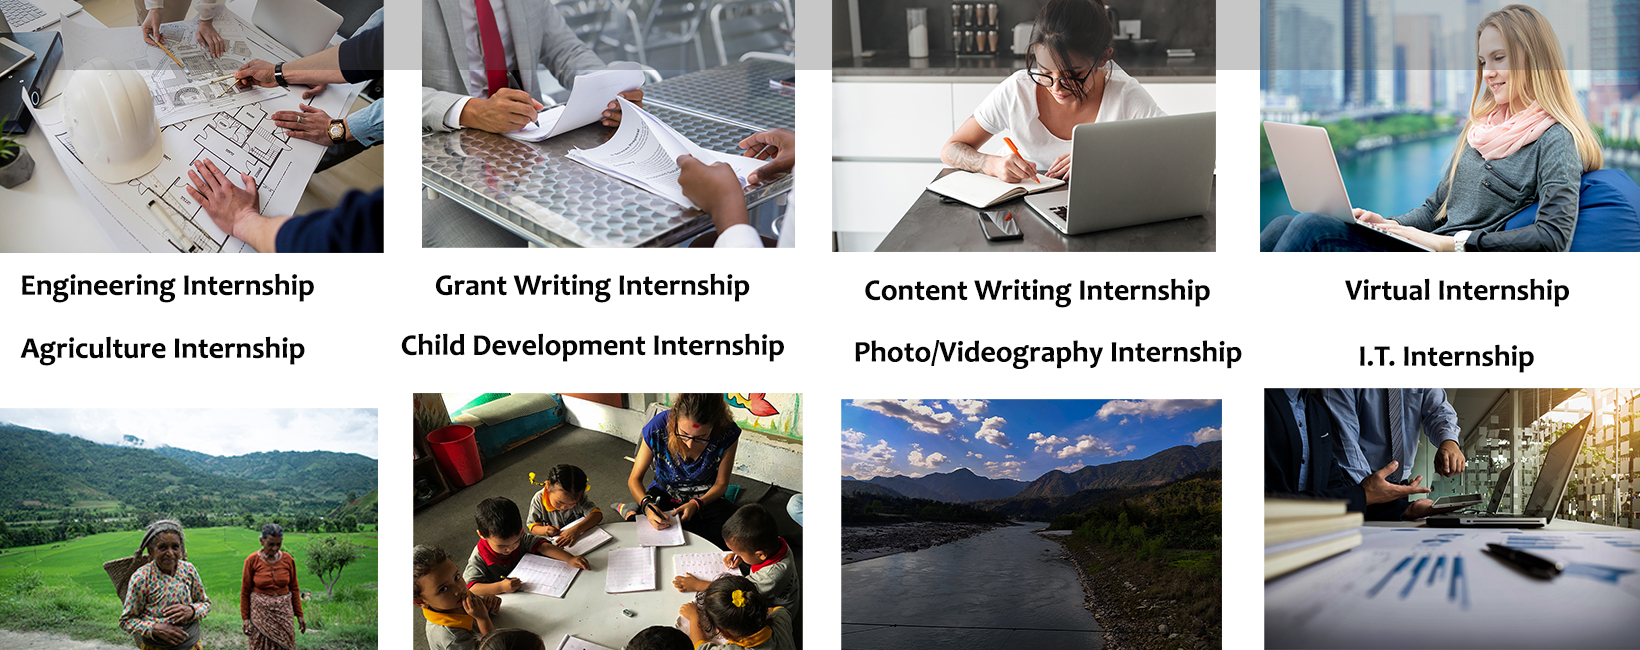 VIRTUAL | REMOTE | ONLINE INTERNSHIP PROGRAM